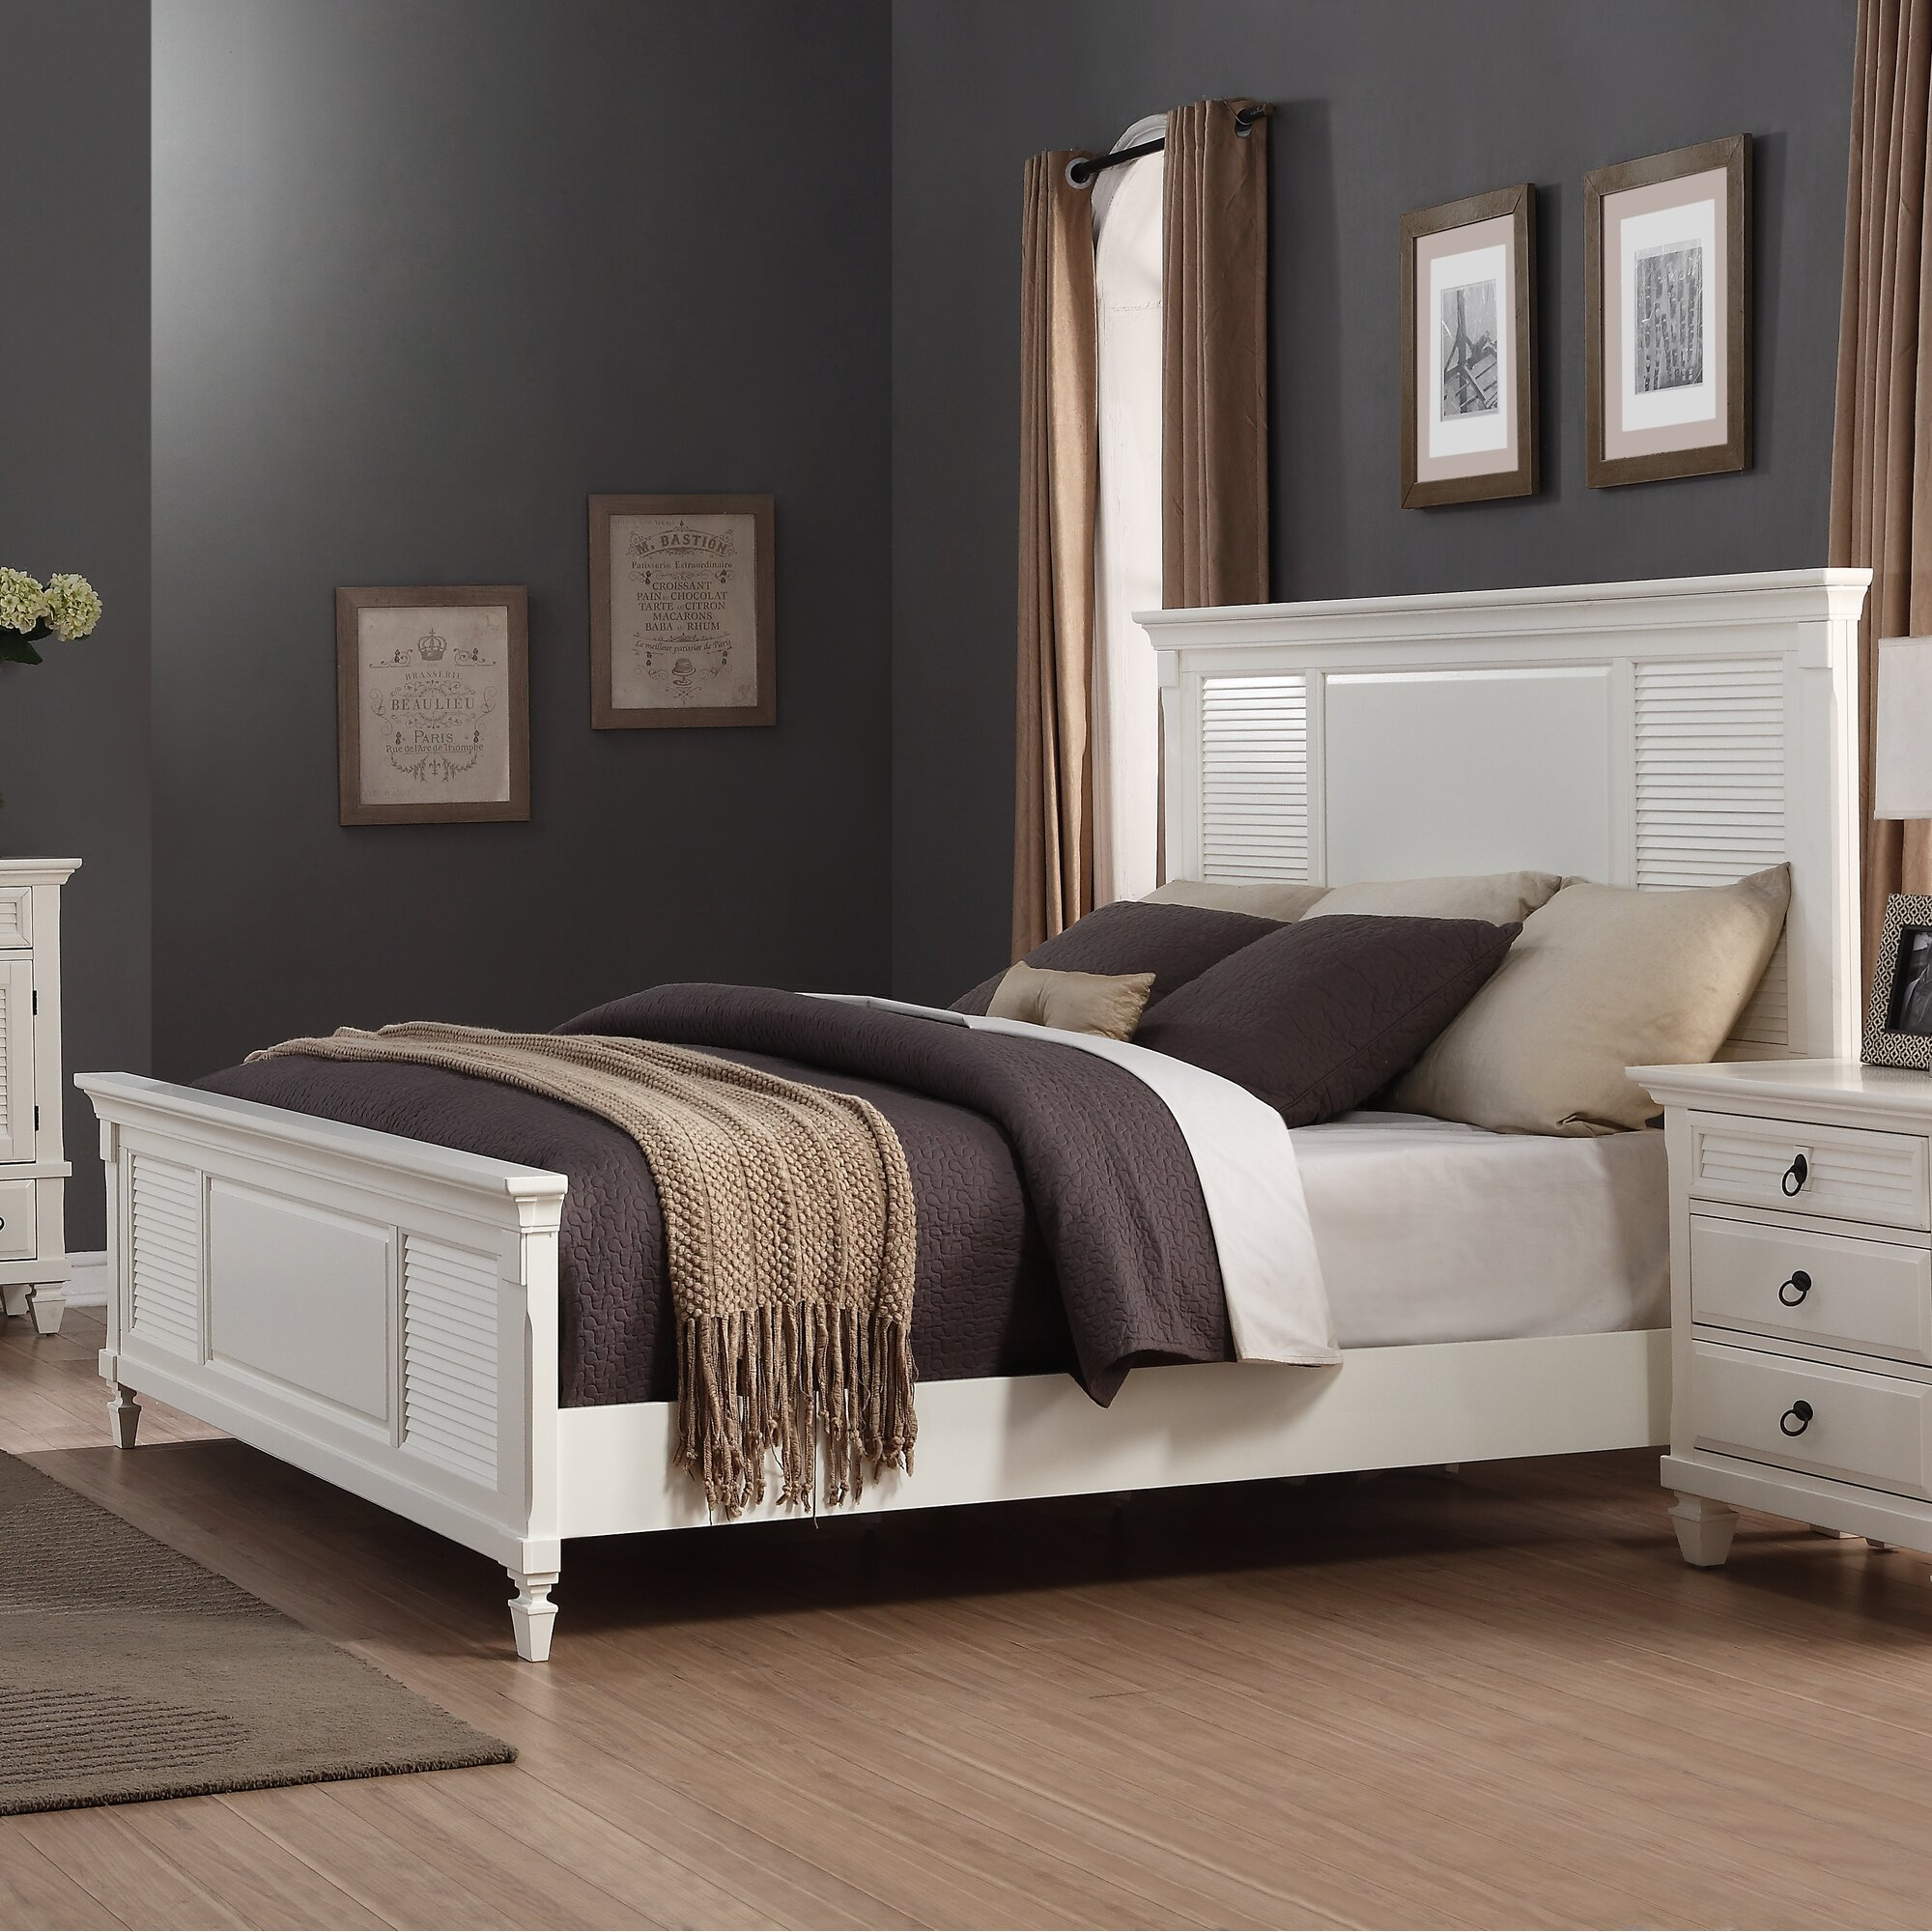 Roundhill furniture regitina panel 6 piece bedroom set for Bedroom 6 piece set